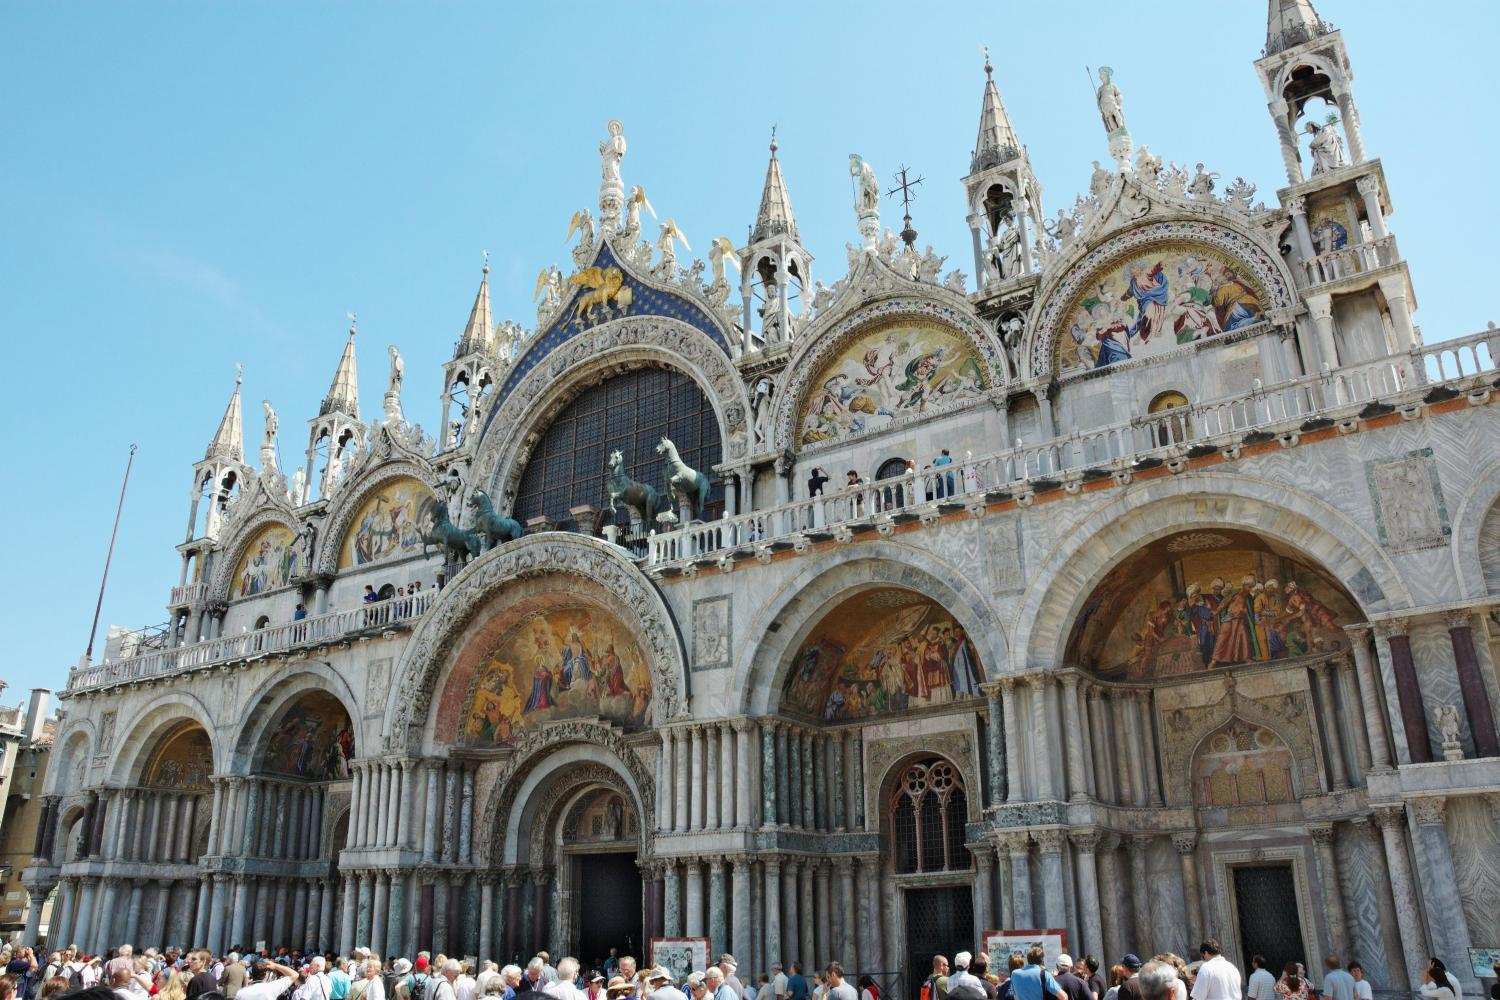 Venice Day Tours - Venice Walking Tours and Gondola ride